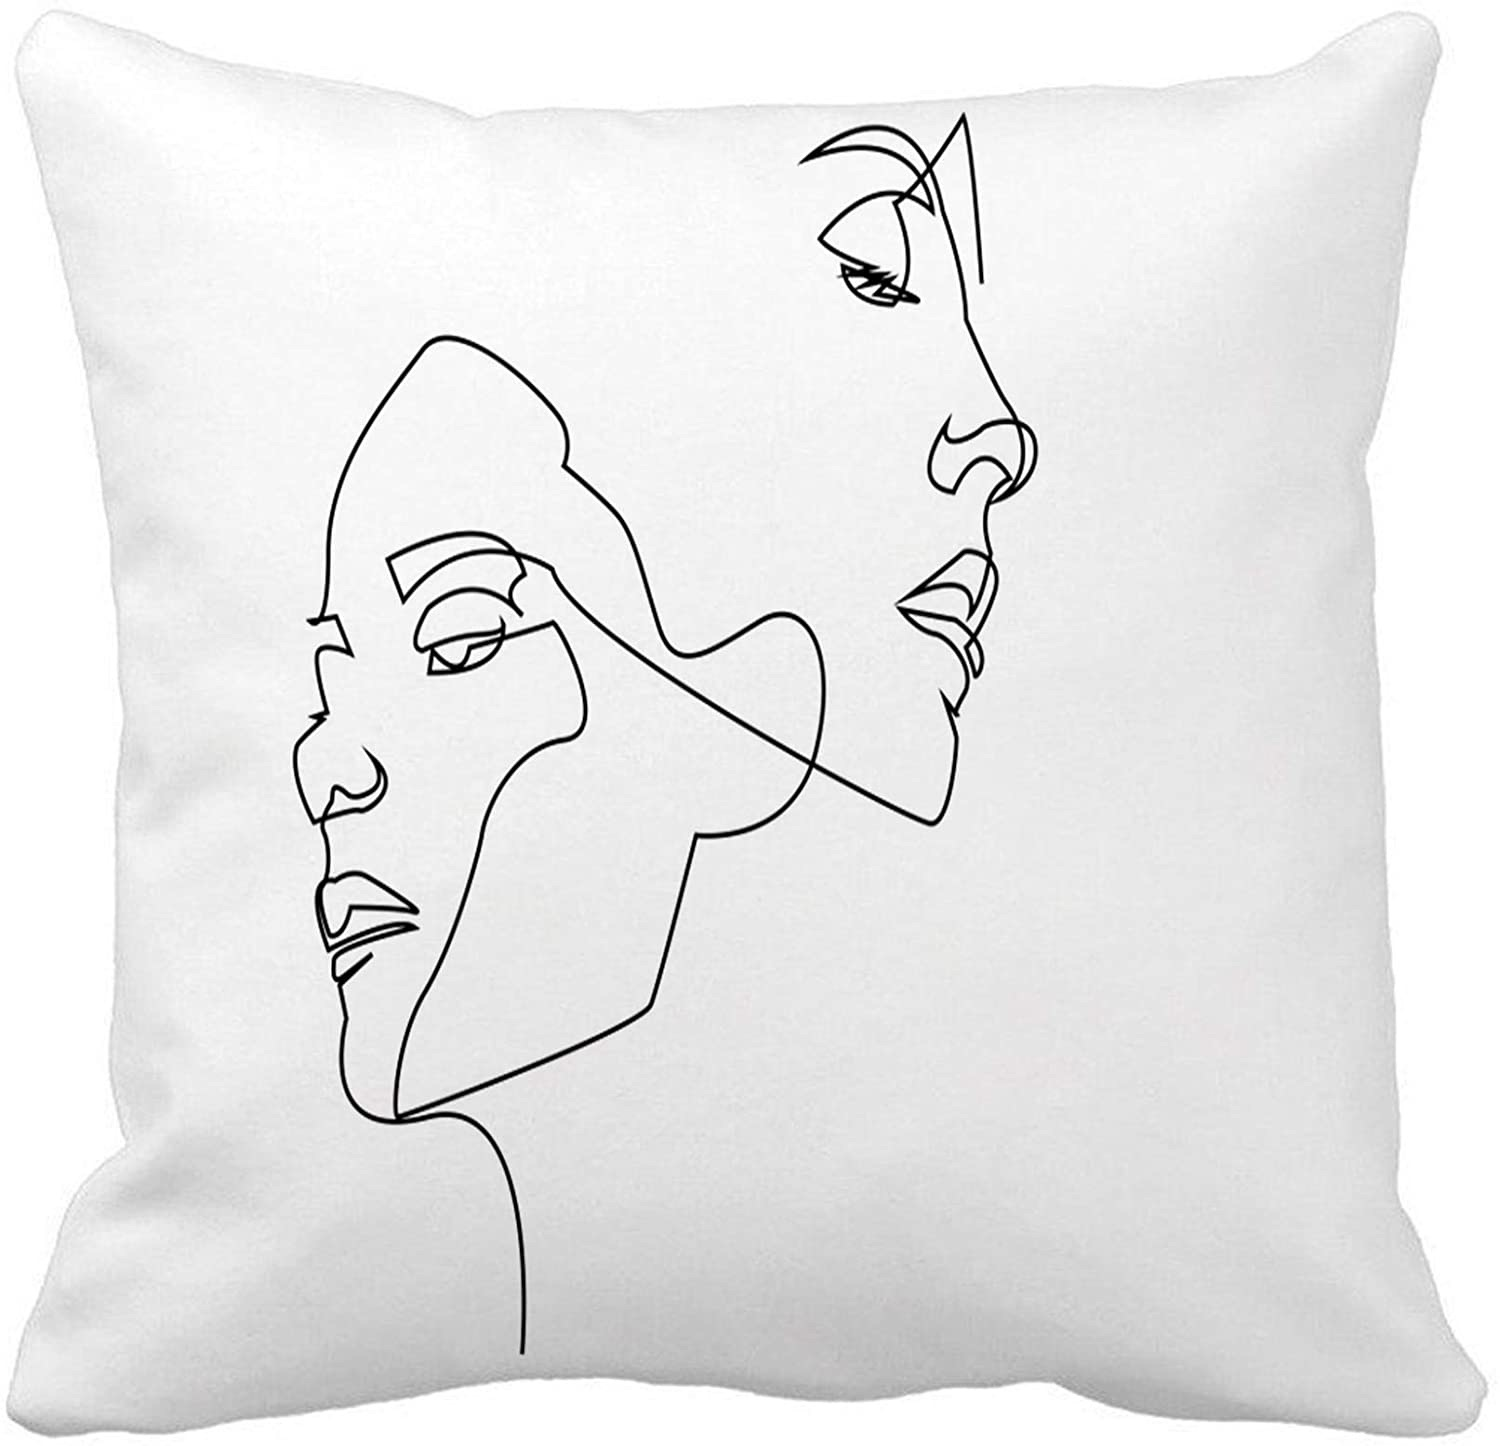 18x18 Inch Throw Pillow Cover Continuous Line Drawing of Faces $9.92